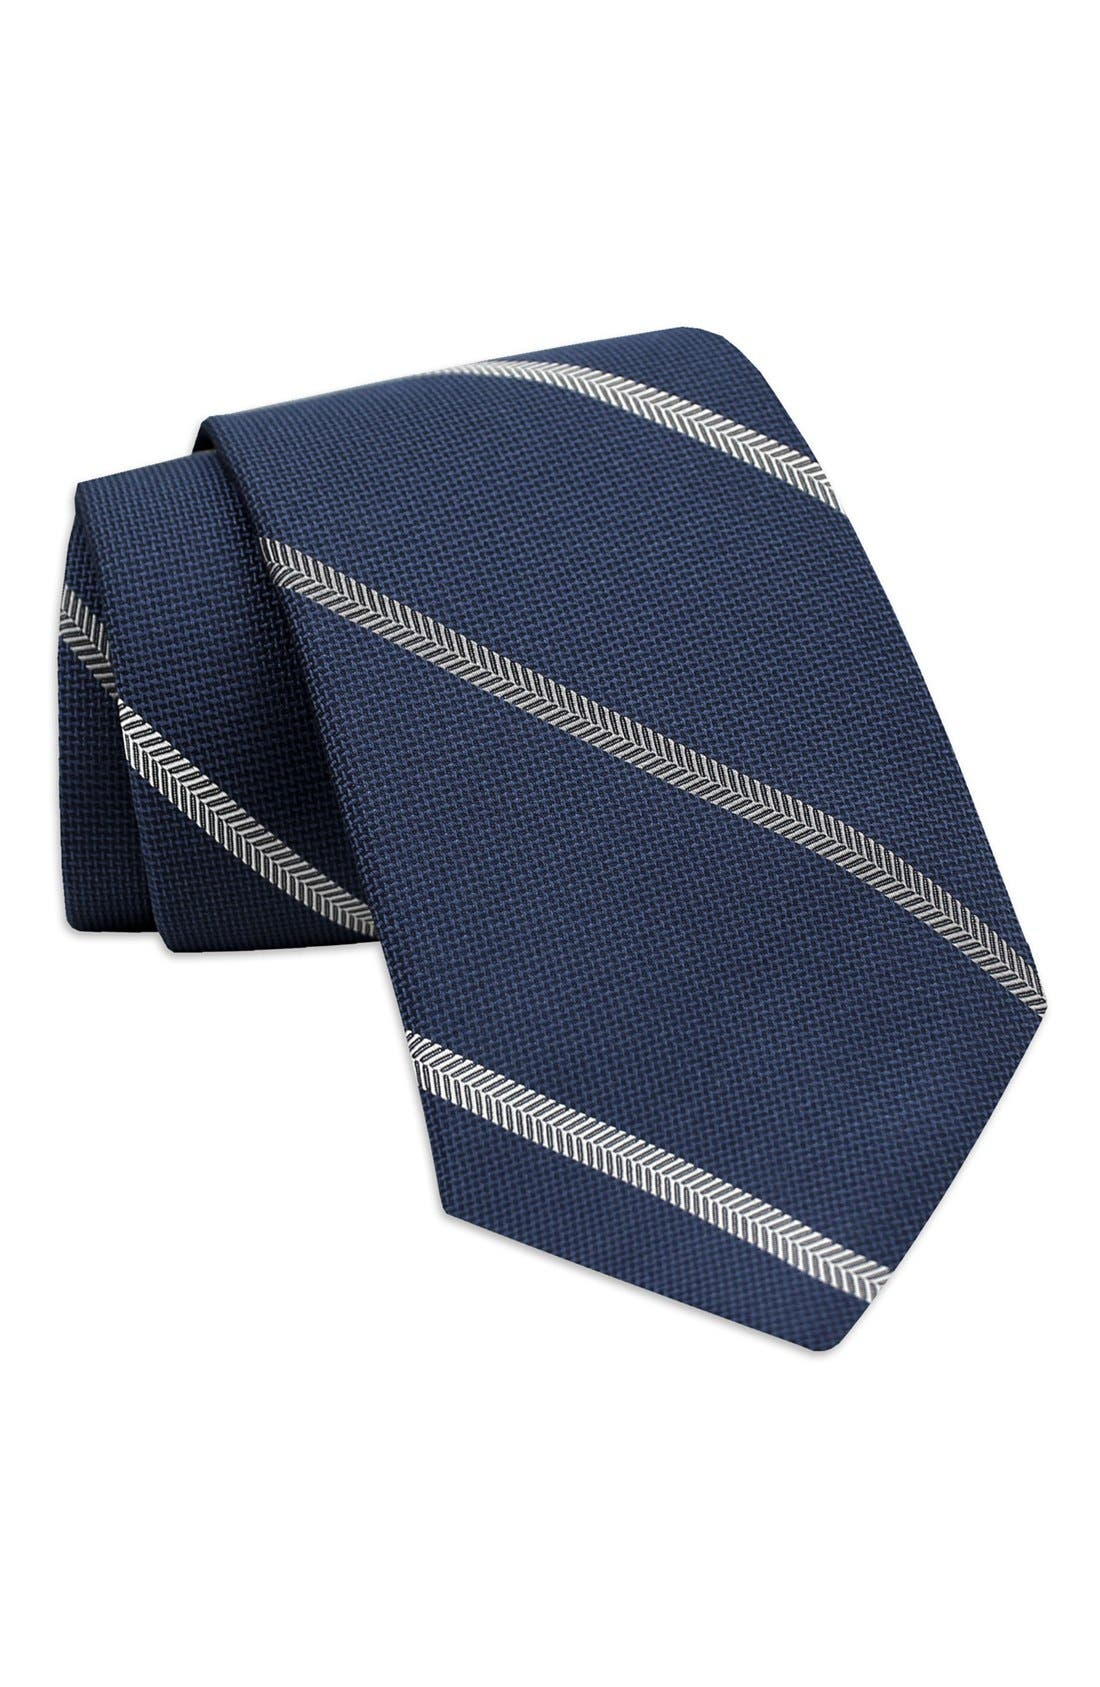 Stripe Woven Silk Tie,                             Main thumbnail 1, color,                             400